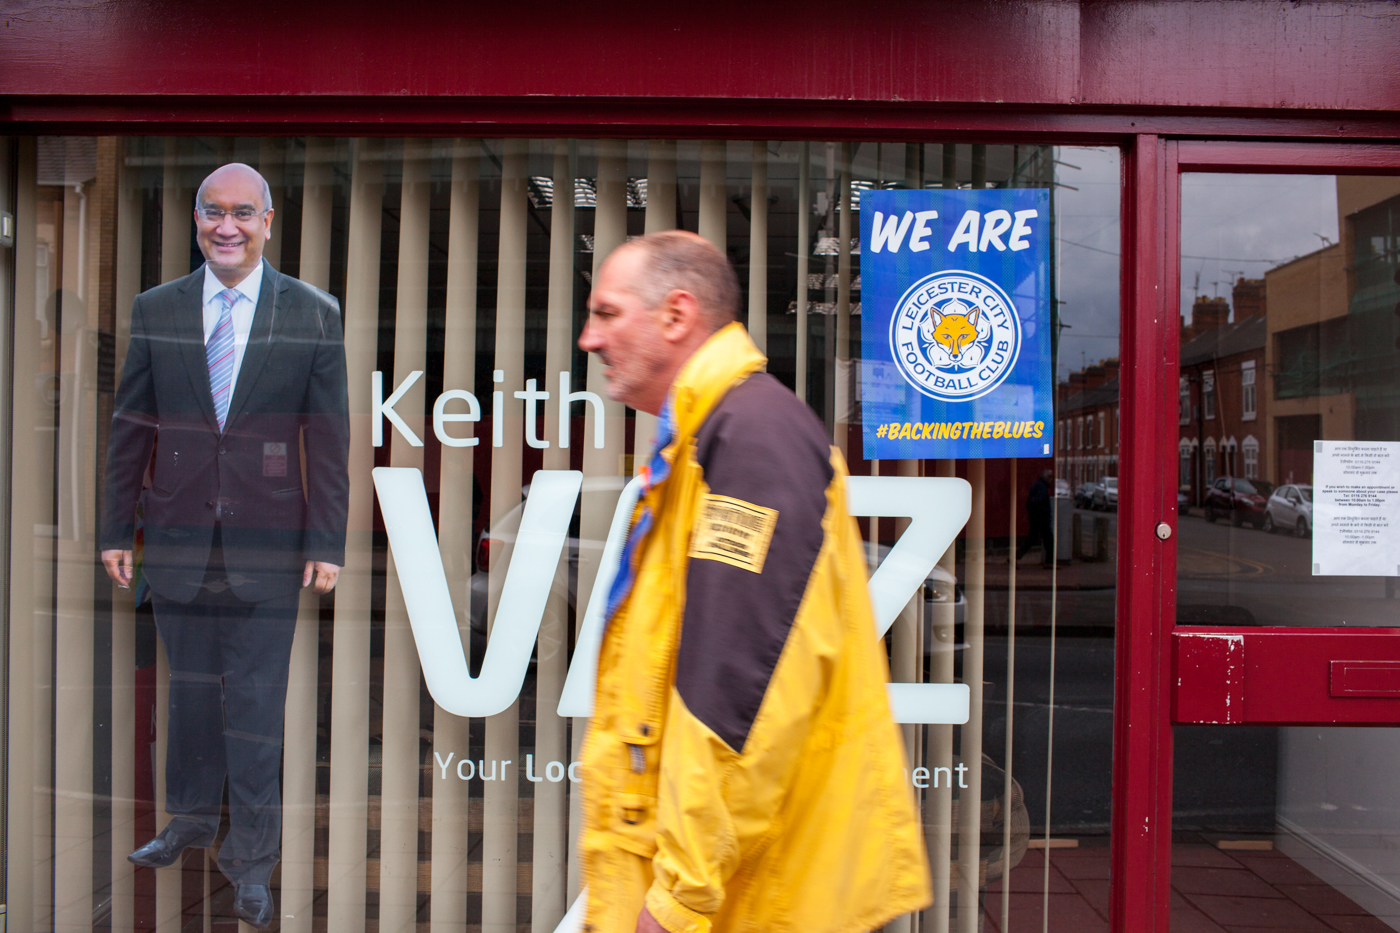 LEICESTER, UK MAY 2016Local business on Belgrave Road, Leicester, show their support for the city's football club.On the 2nd May 2016, Leicester City football club became champions of England for the first time in their 132 year history.Leicester has been dubbed as most multicultural diversified city in England, thanks to scores of people that have flocked the city and who have hailed from different parts of the world. According to the Leicester city council, the city has the highest number of immigrants who have sought both temporary and permanent residence in England. Majority of these immigrants are people who have left their home countries in pursuit of job opportunities in England.  Photo by Peter Dench/Getty Images Assignment for ESPN